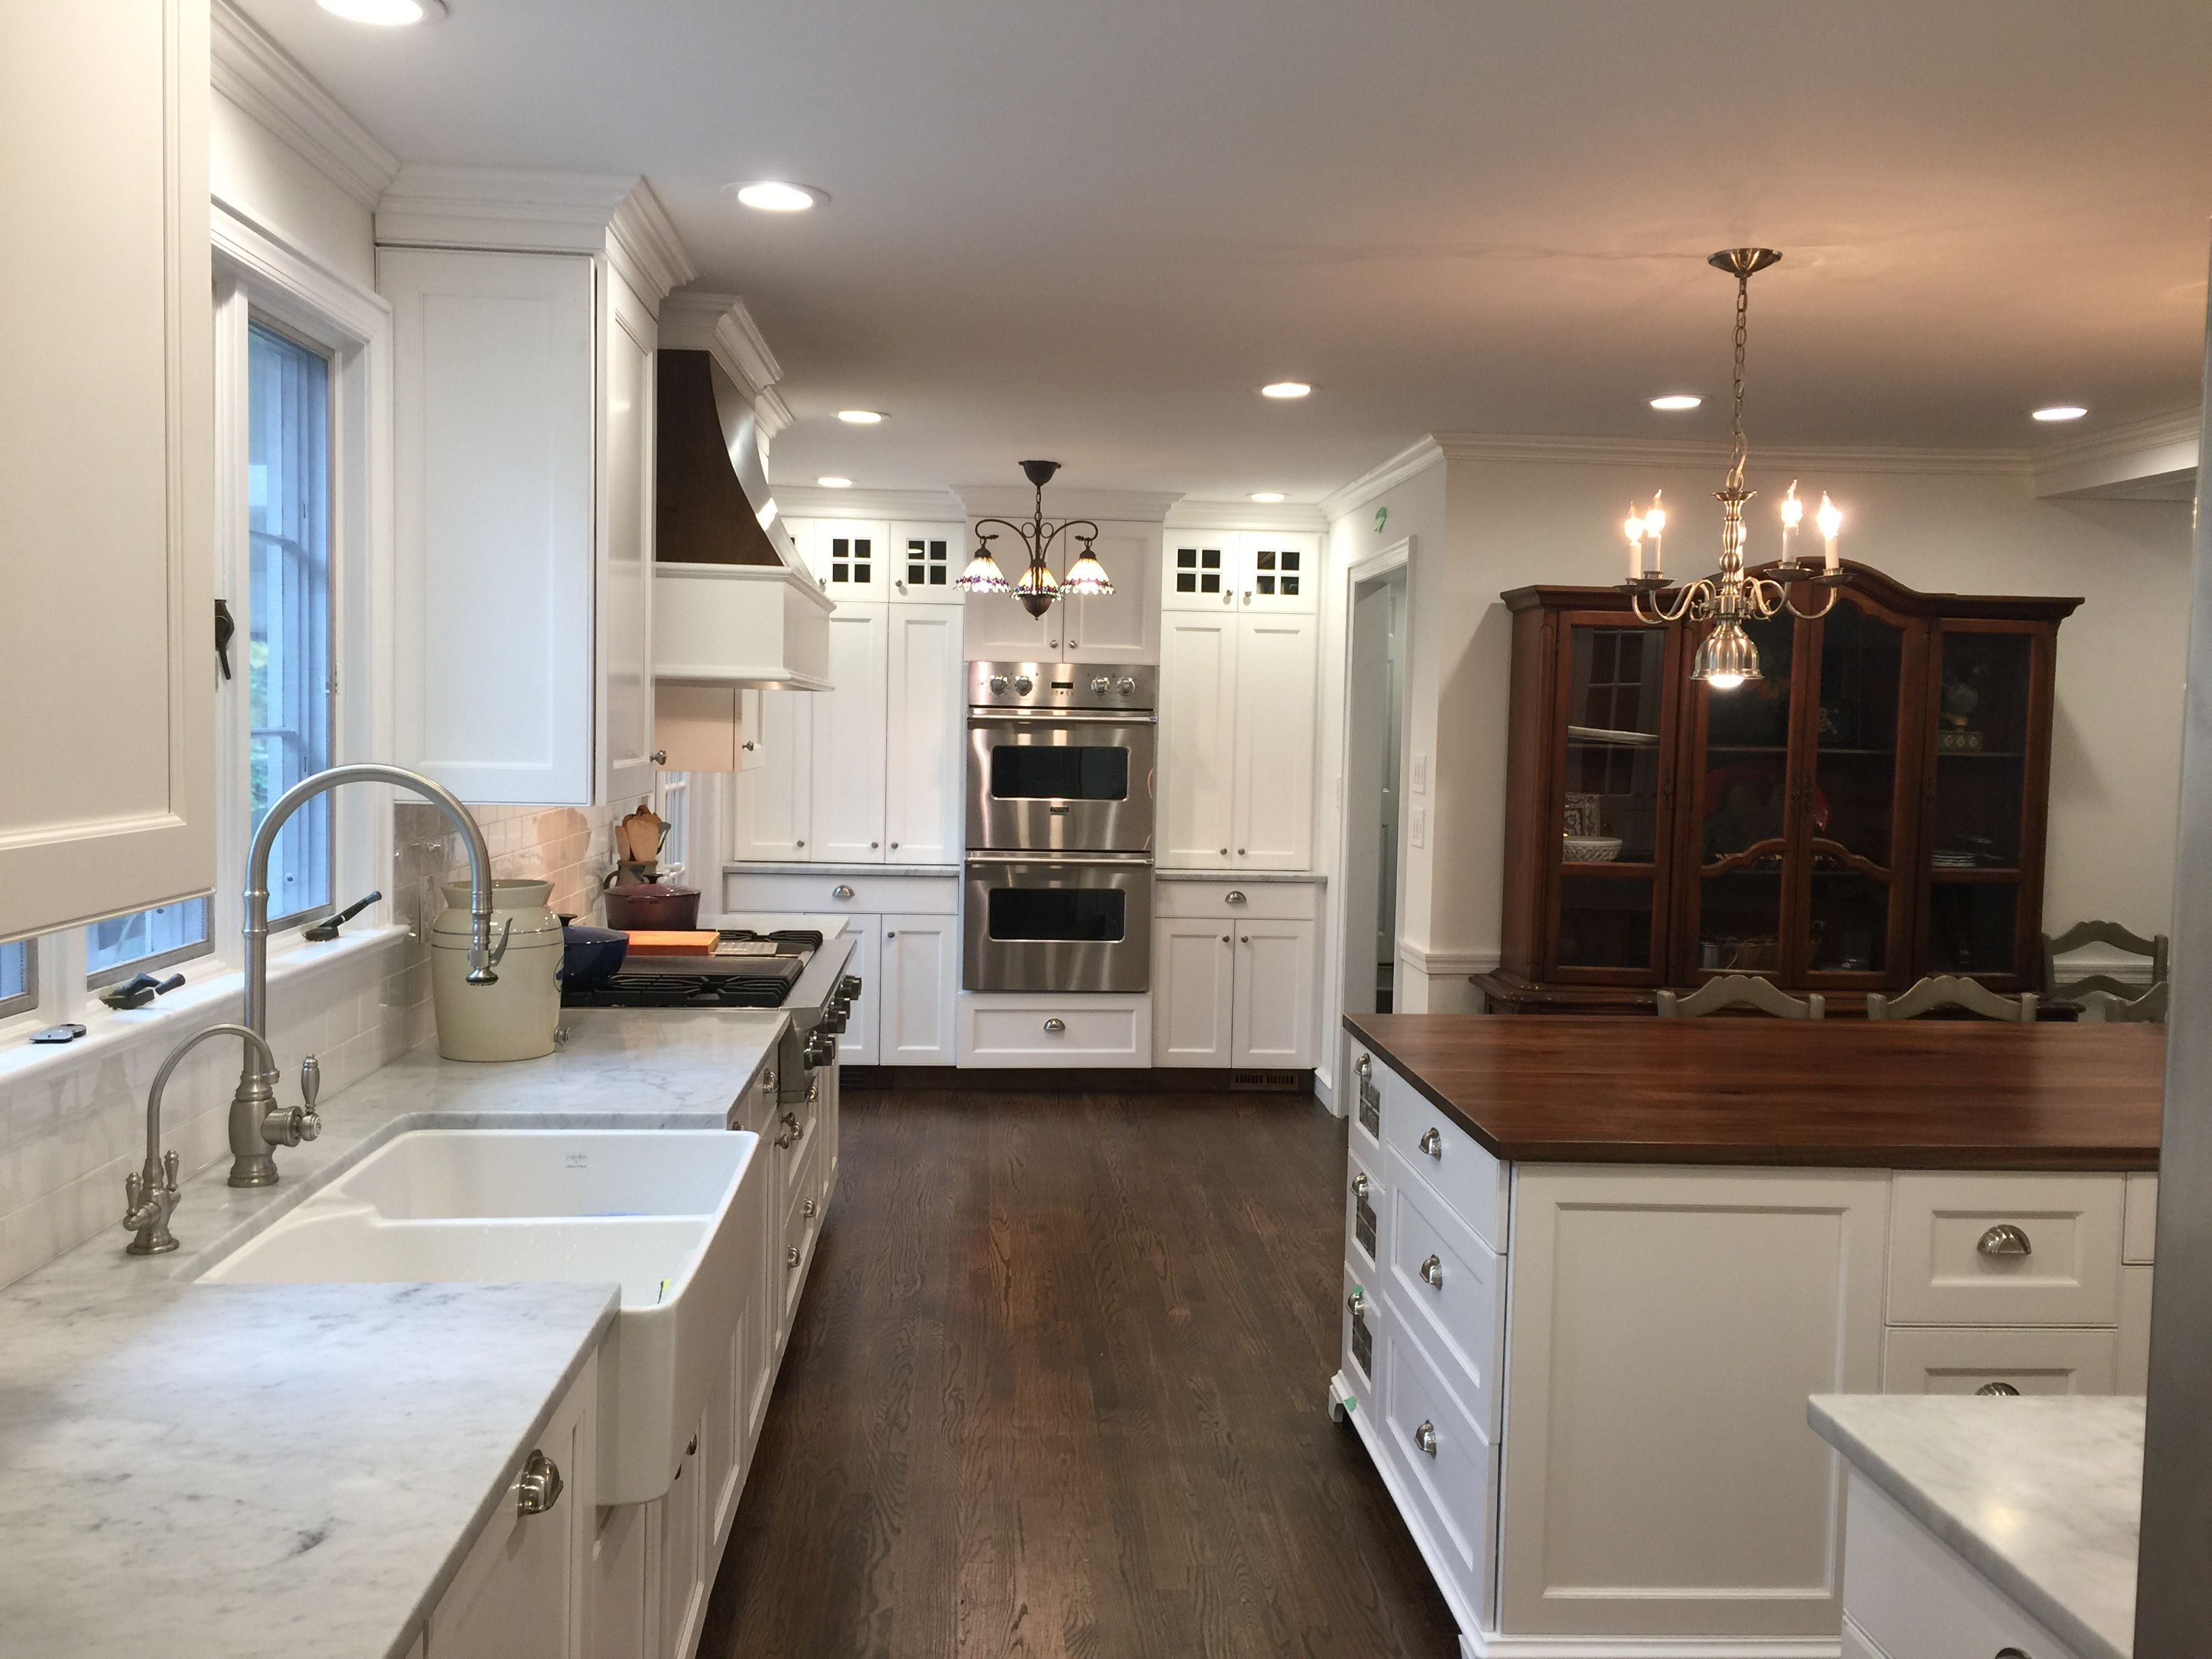 Discount Granite Countertops Nj Historic Kitchen With Carrara Marble Perimeter Countertops